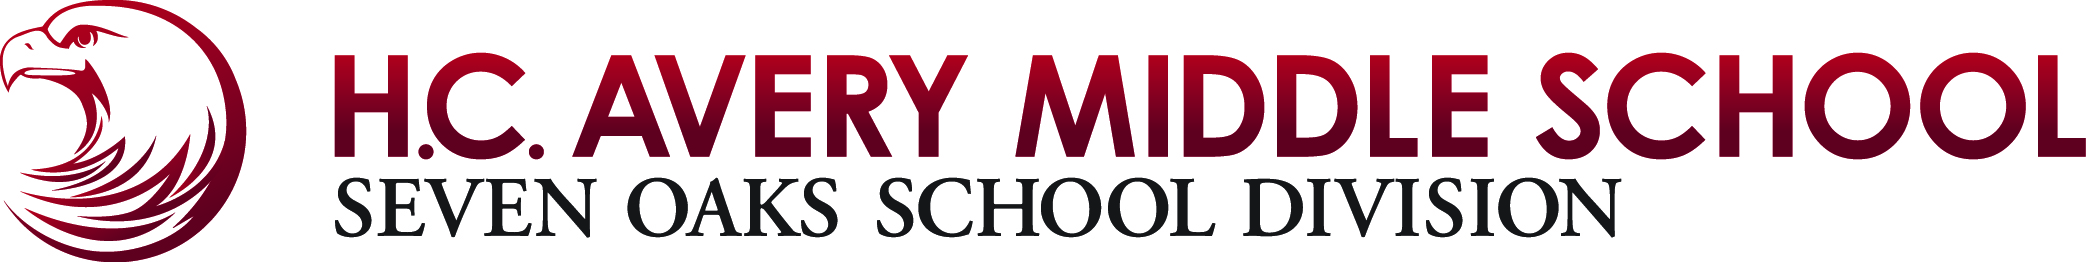 CMYK-HCAveryMiddleSchool-Full-Logo.jpg